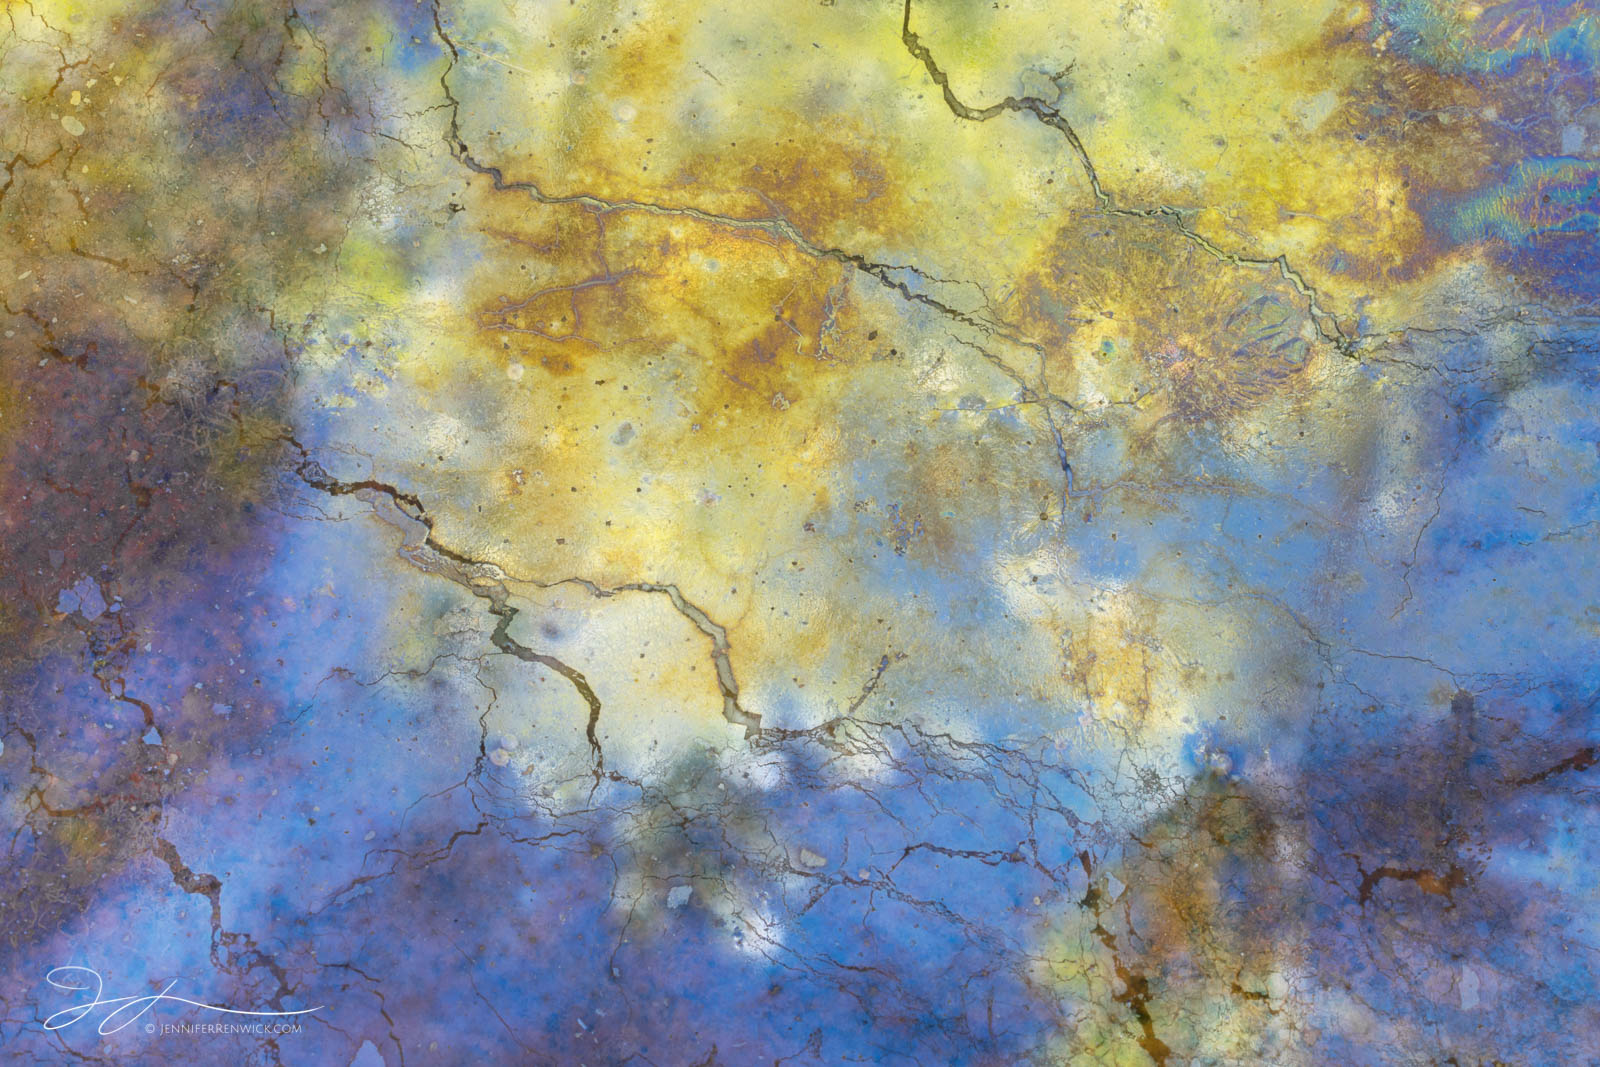 Blue and yellow colors come together to create a dreamy look in a puddle of natural oils on the canyon floor.